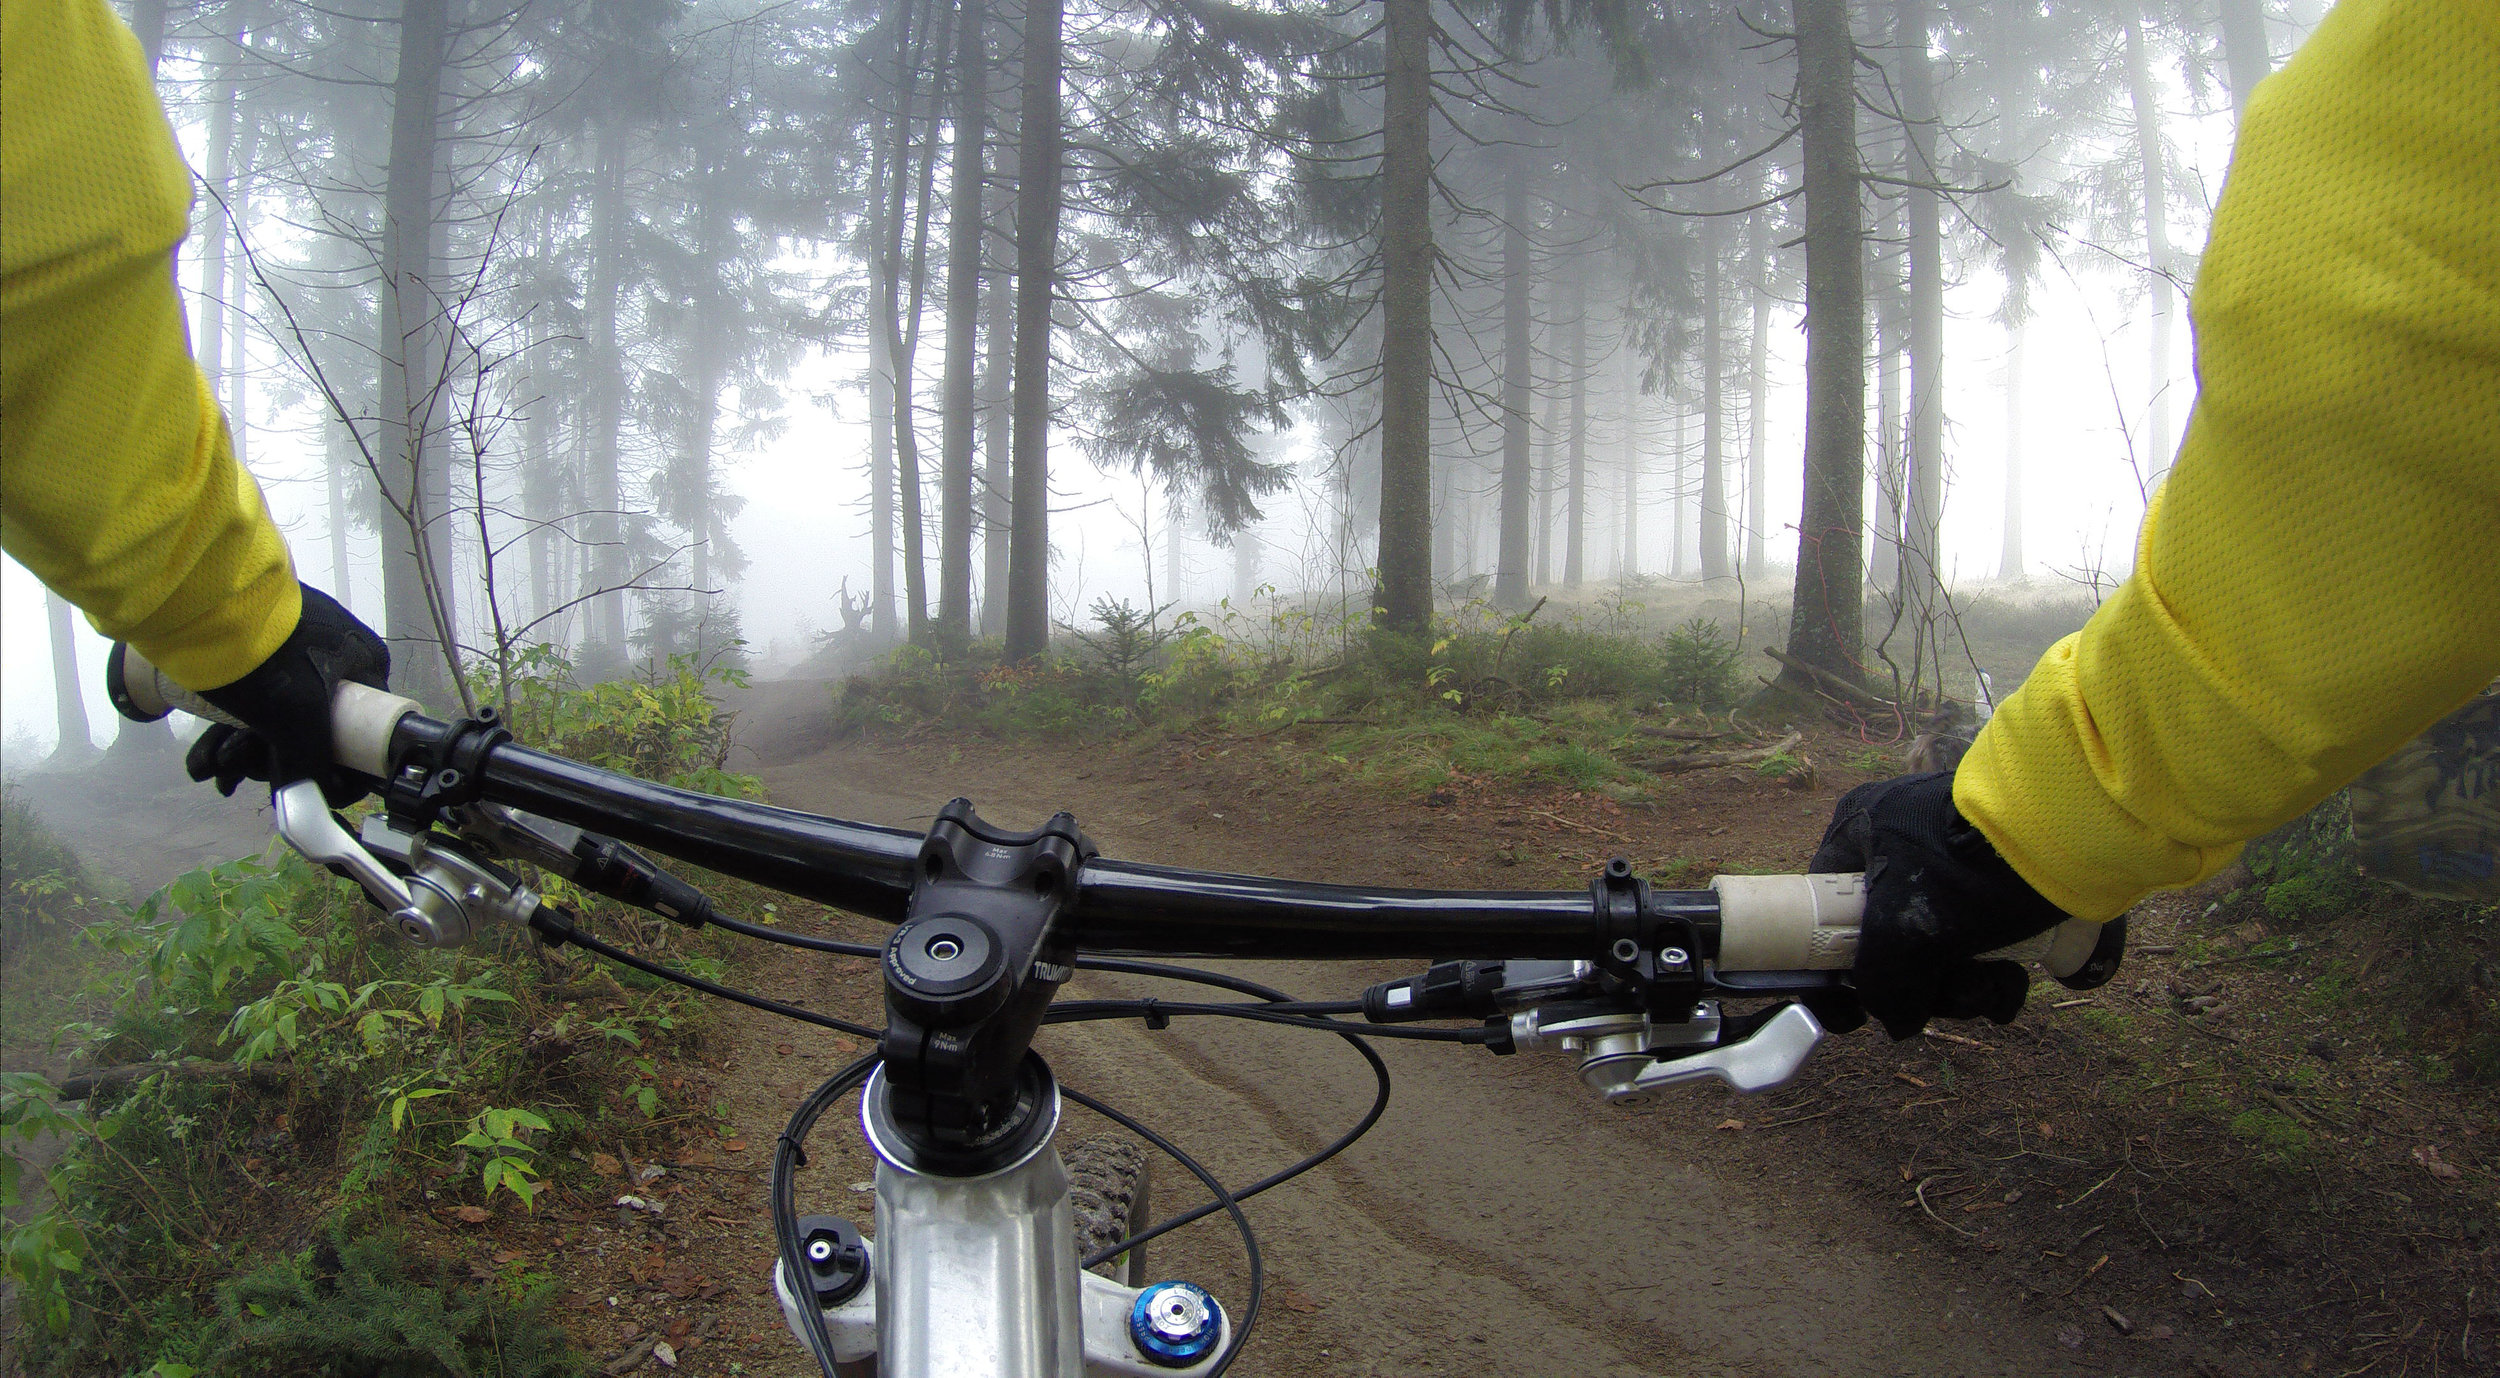 Biking through the Mendocino woods